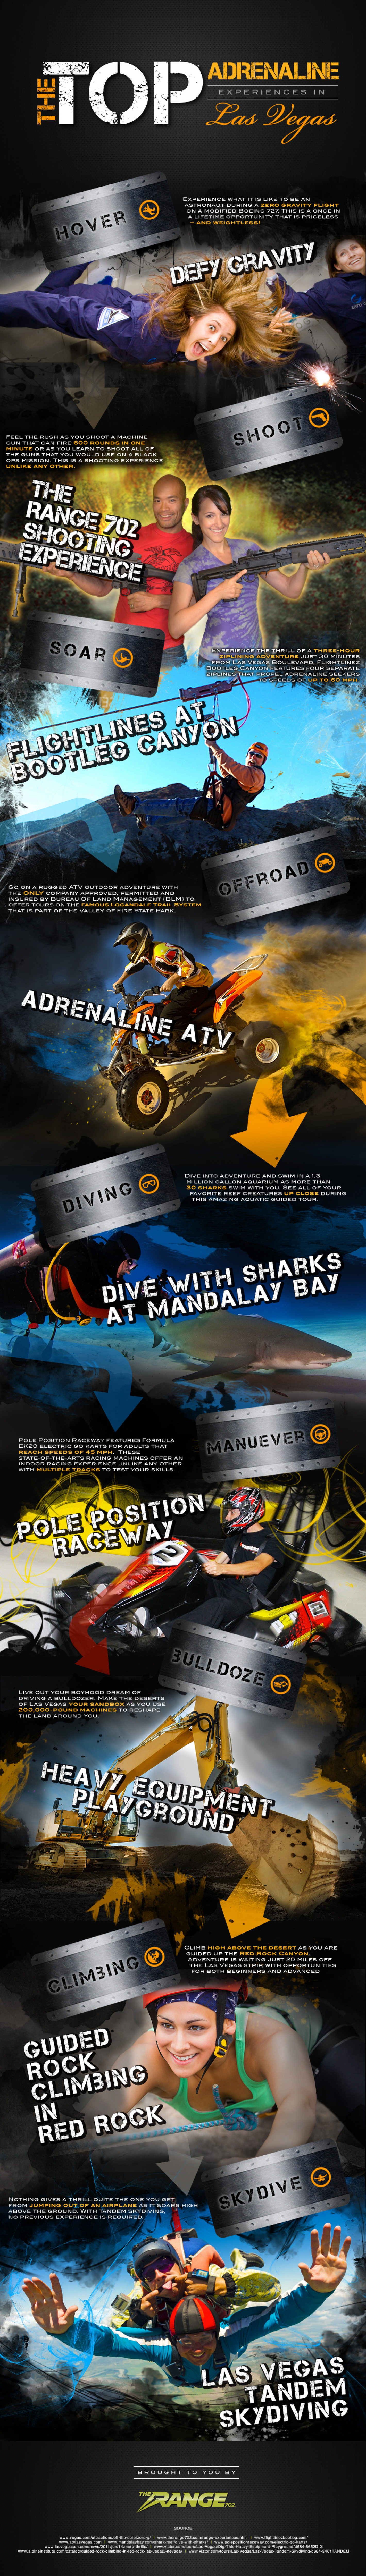 The Top Adrenaline Experiences in Las Vegas Infographic